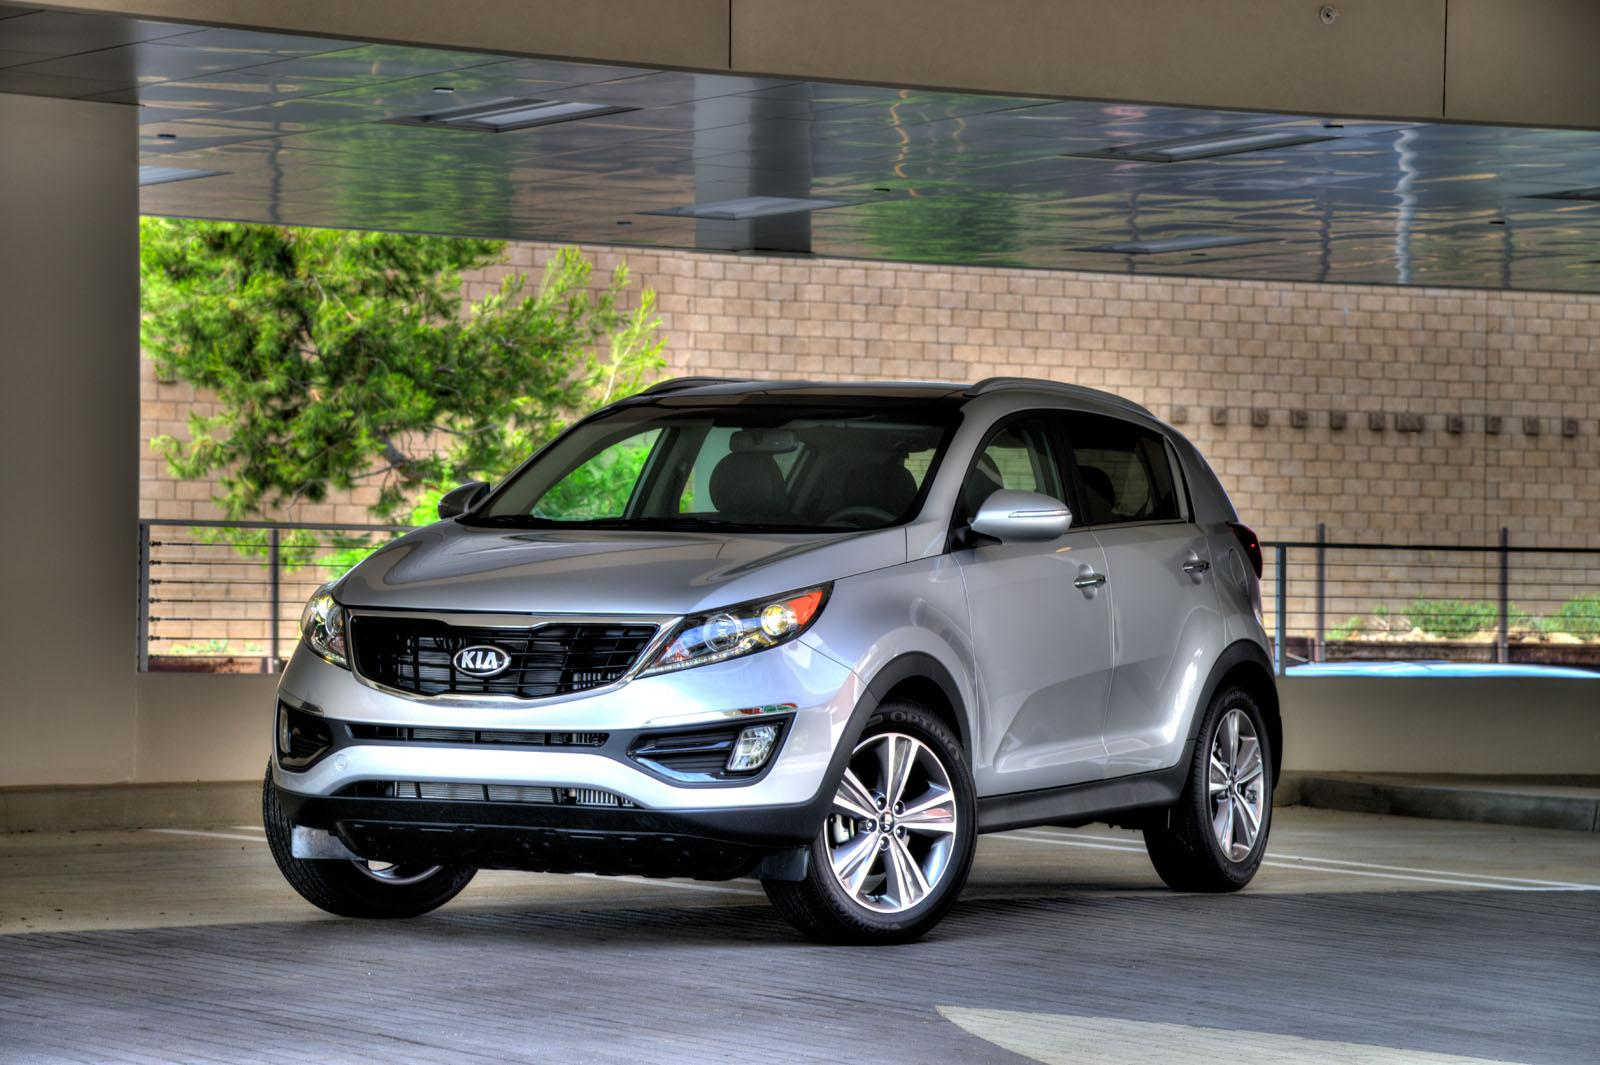 The New Kia Sportage 2014 Facelift